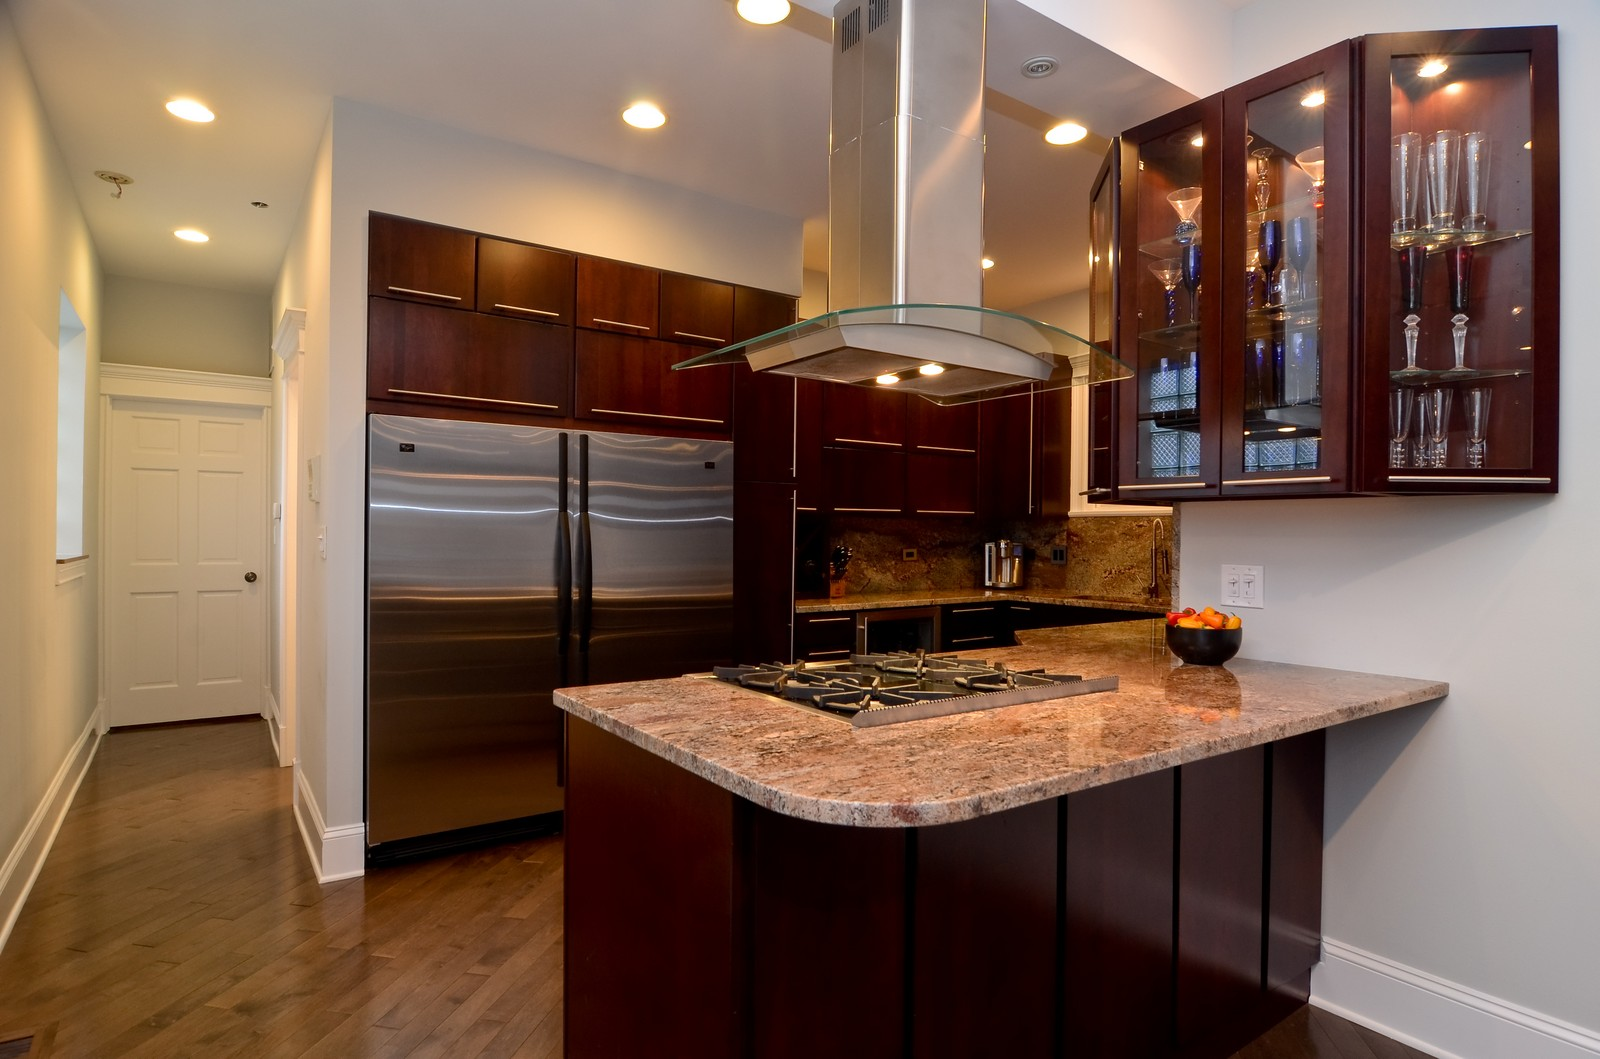 Real Estate Photography - 1856 W Armitage, Unit 1, Chicago, IL, 60622 - Location 1